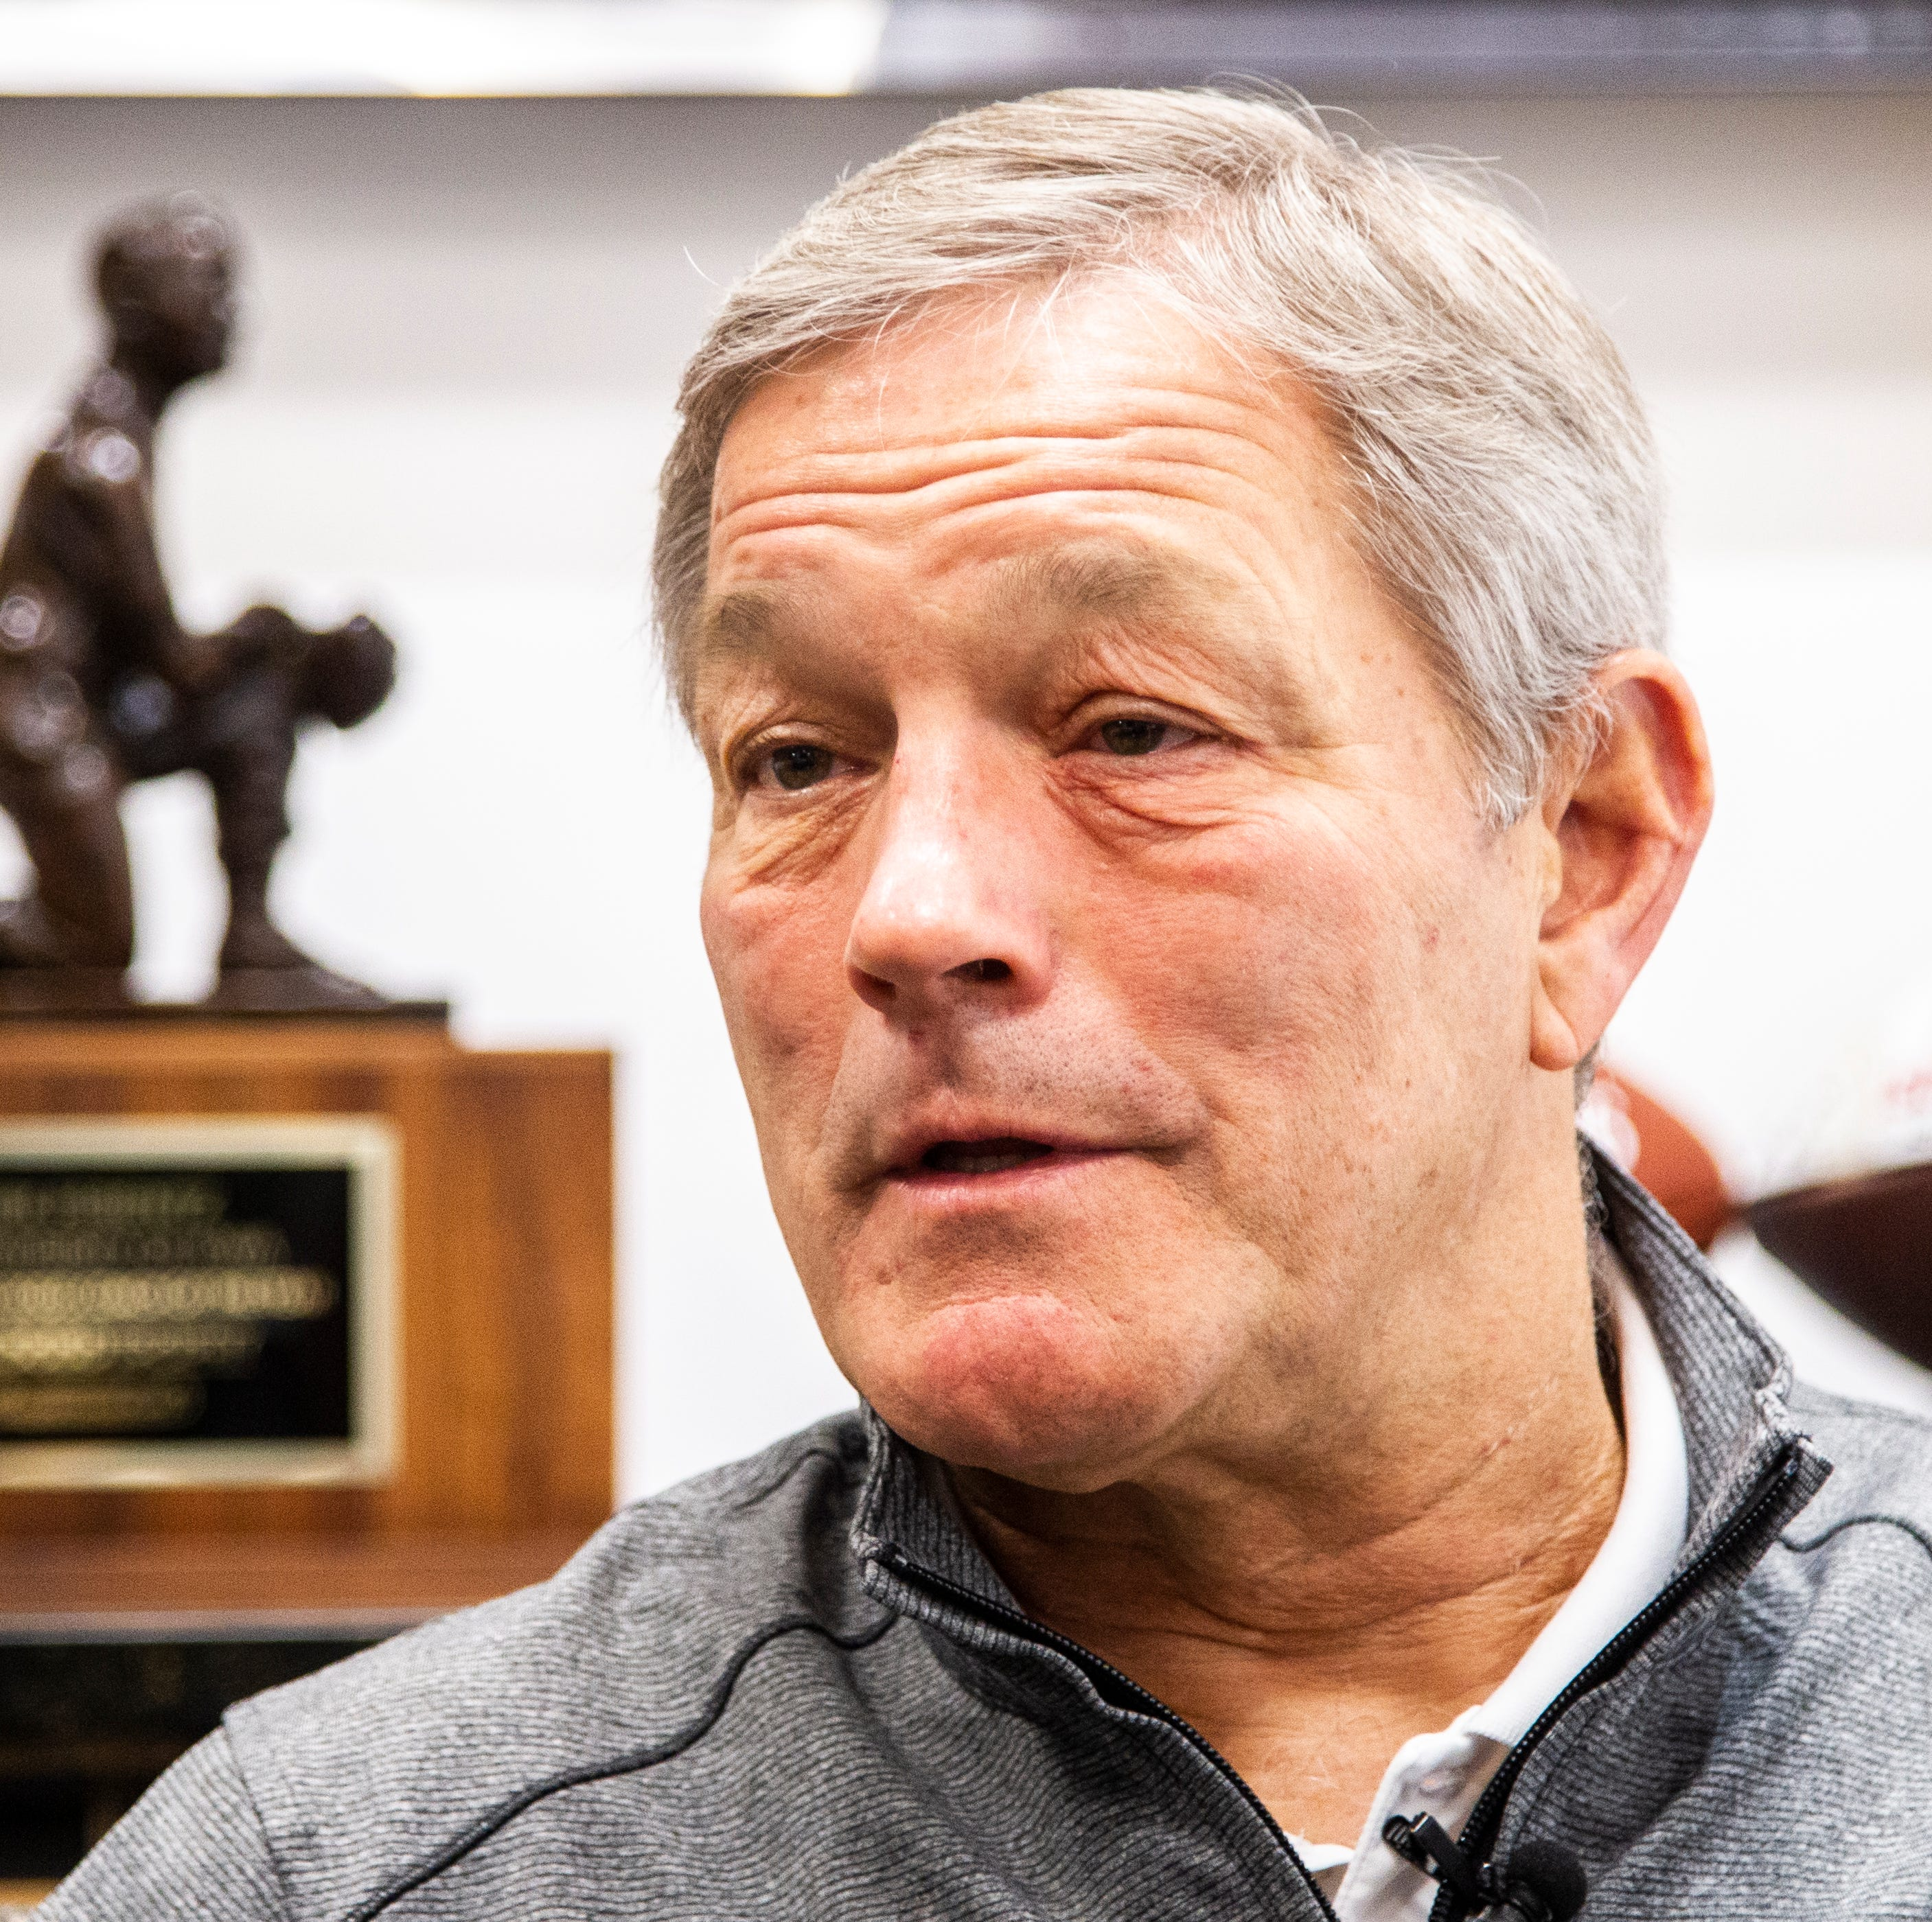 Leistikow: In spring-opening comments, Kirk Ferentz sets high bar for 2019 Hawkeyes